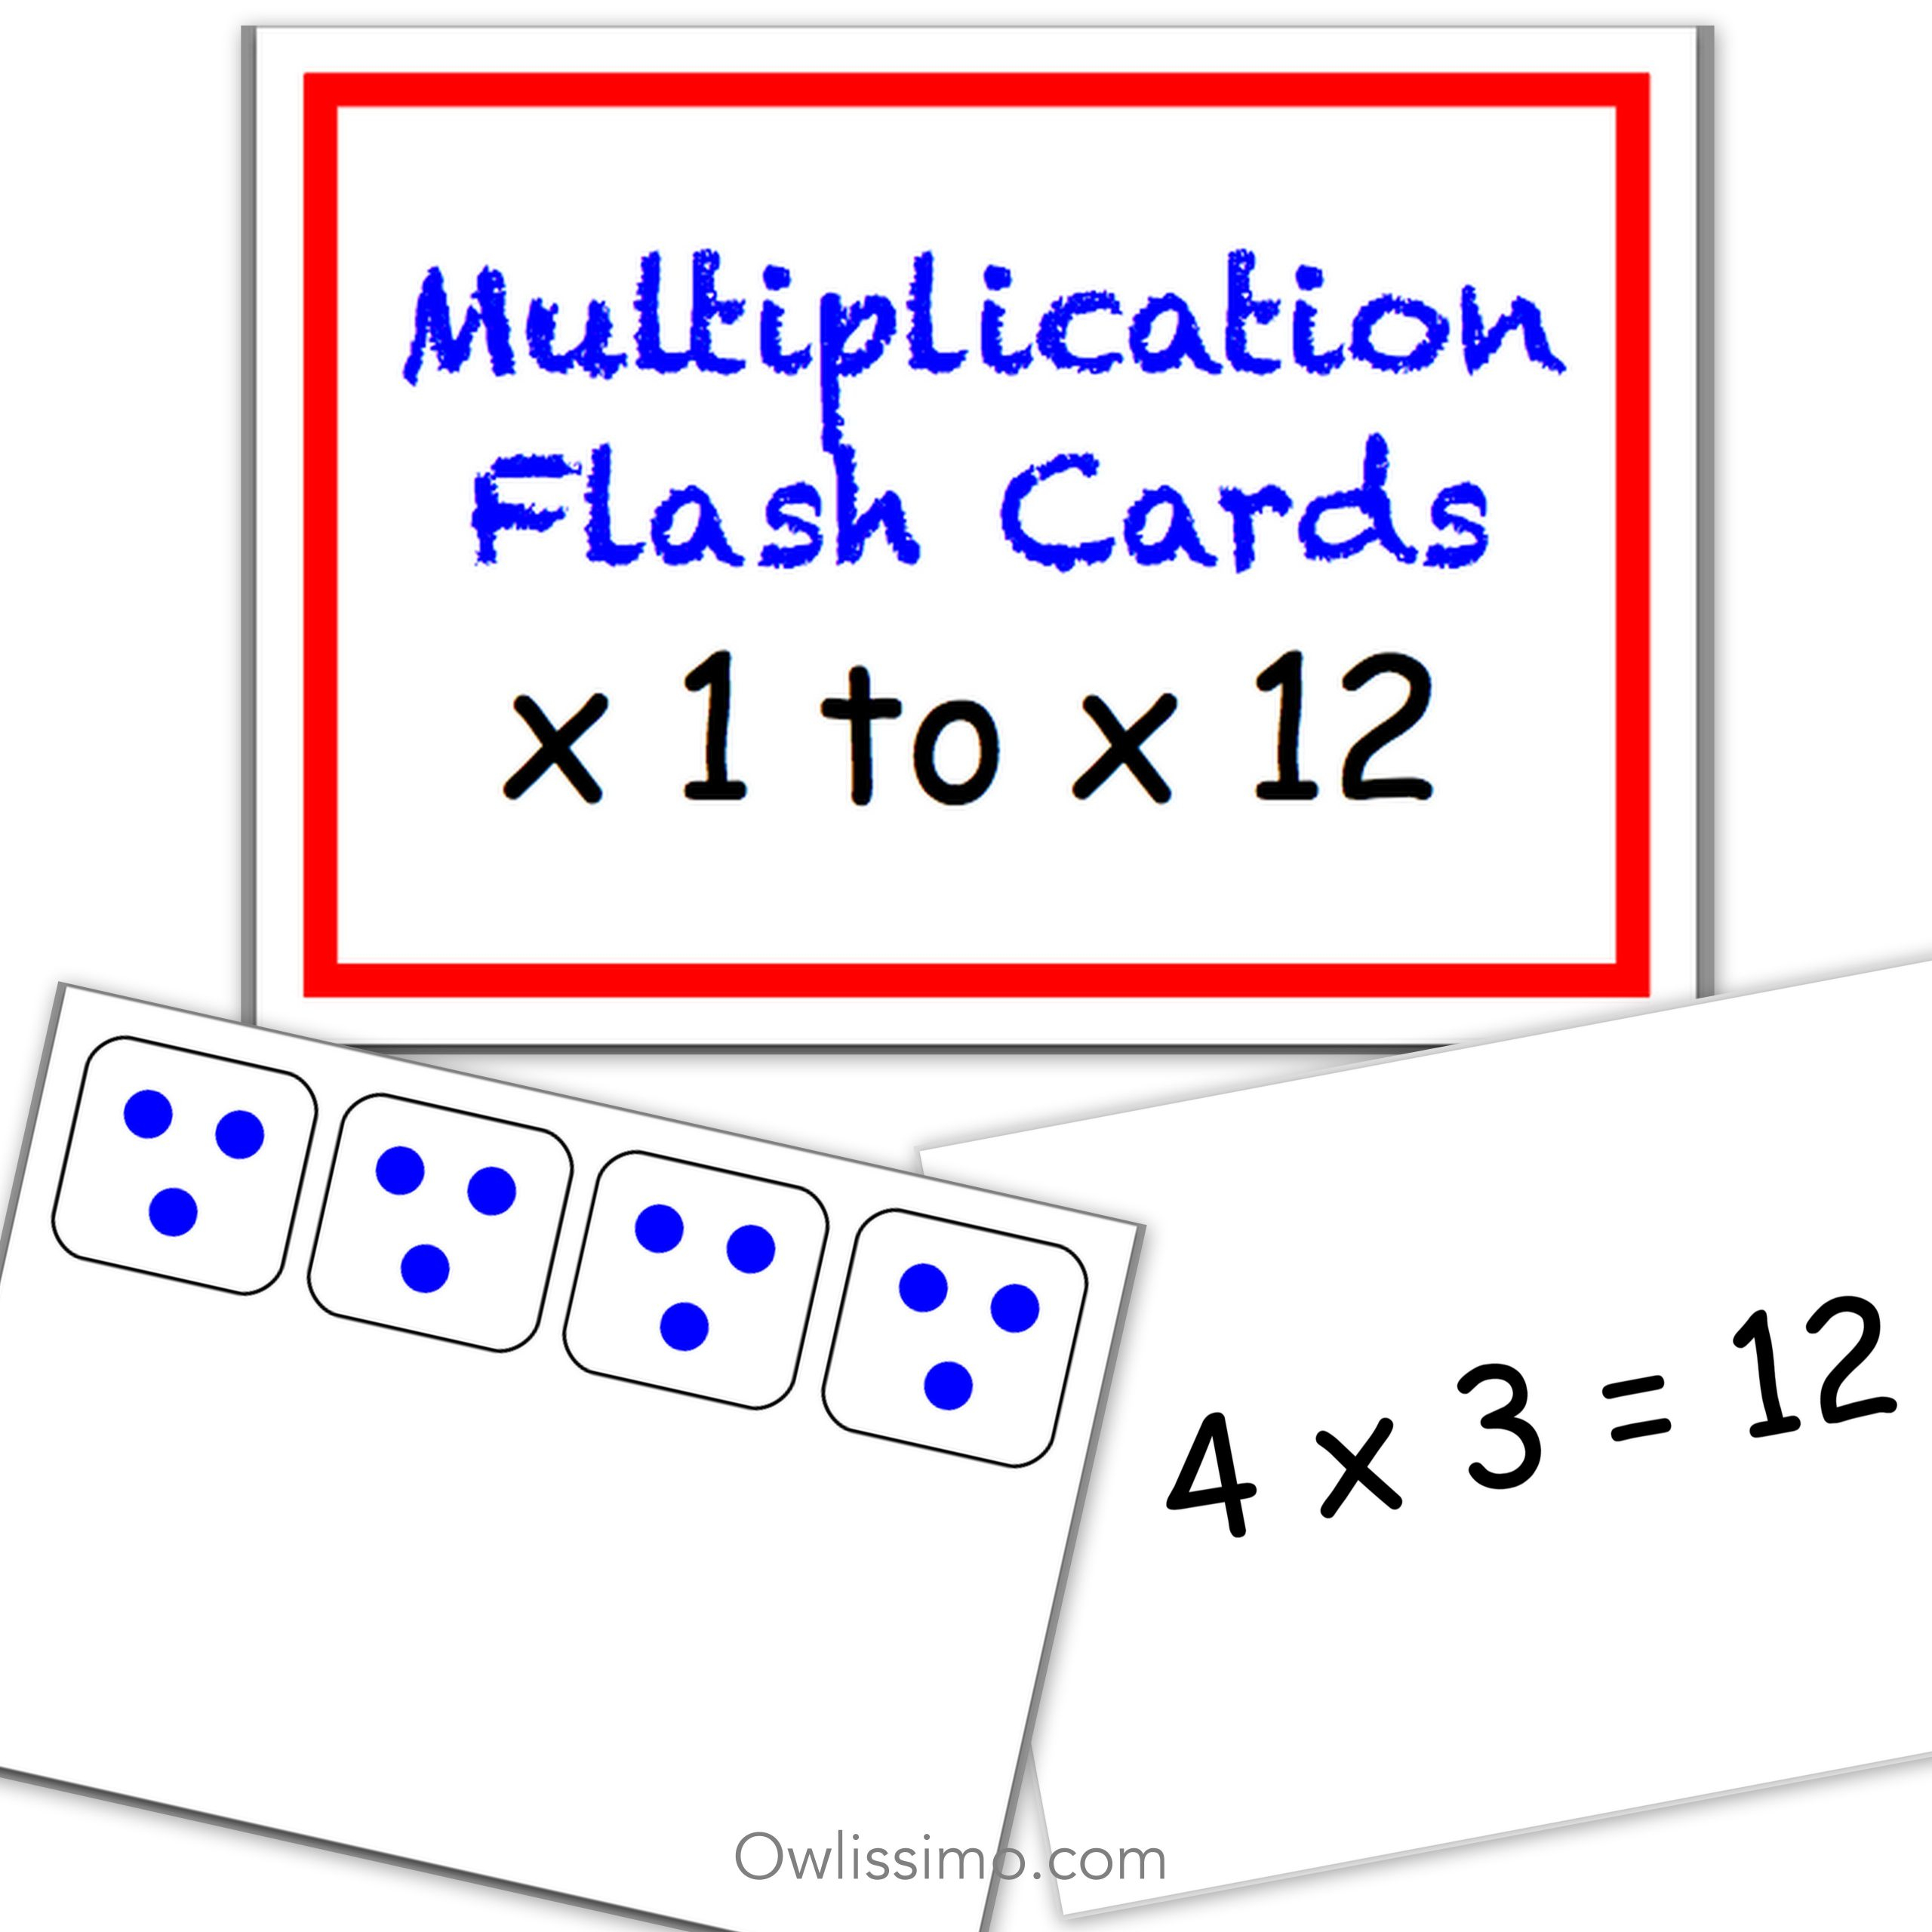 Printable Flashcards - Multiplication